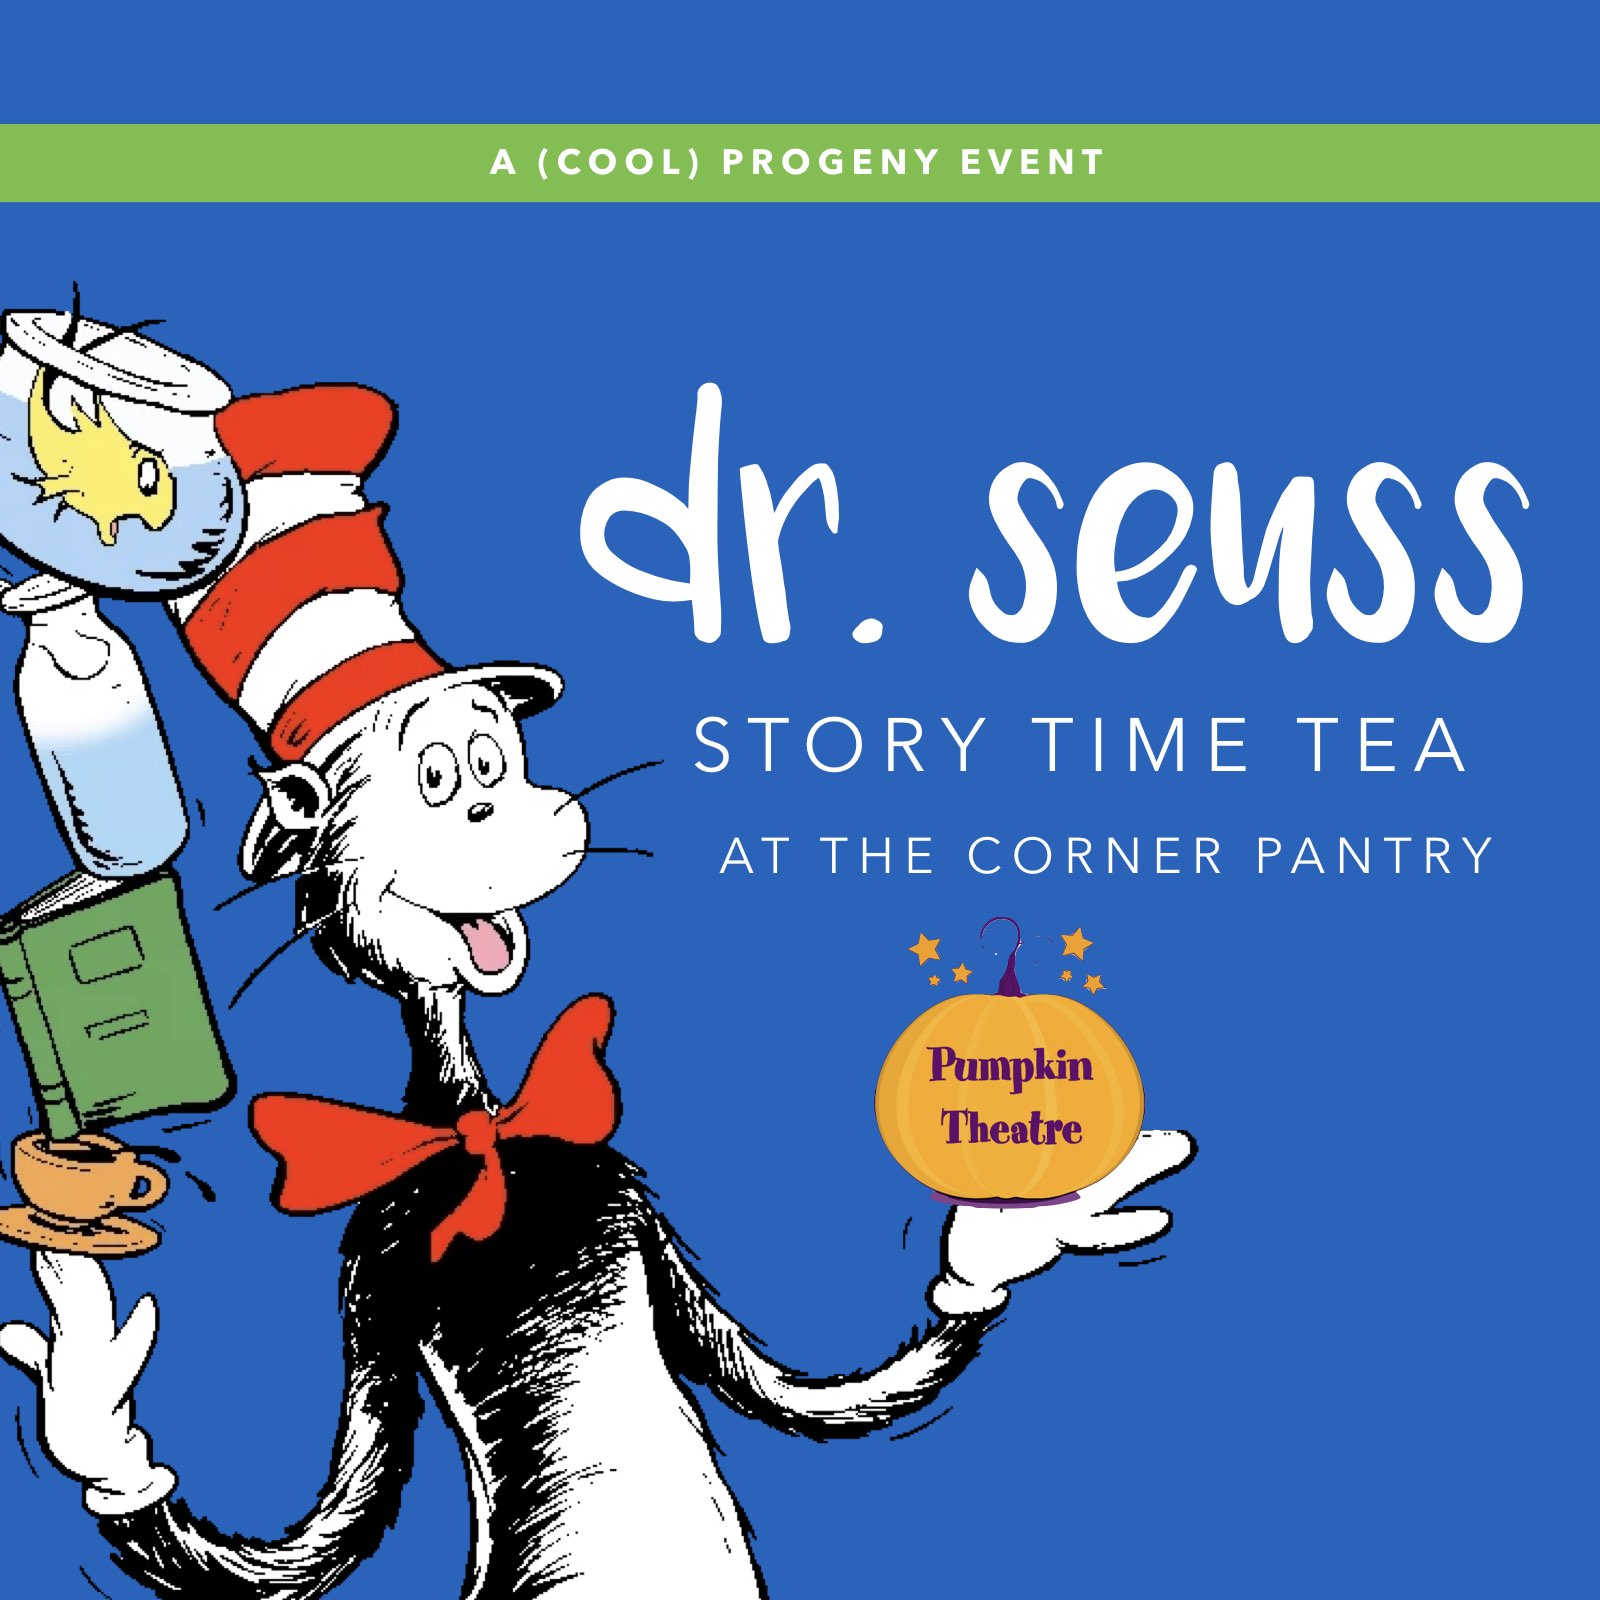 Dr. Suess Story Time Tea - (cool) progeny